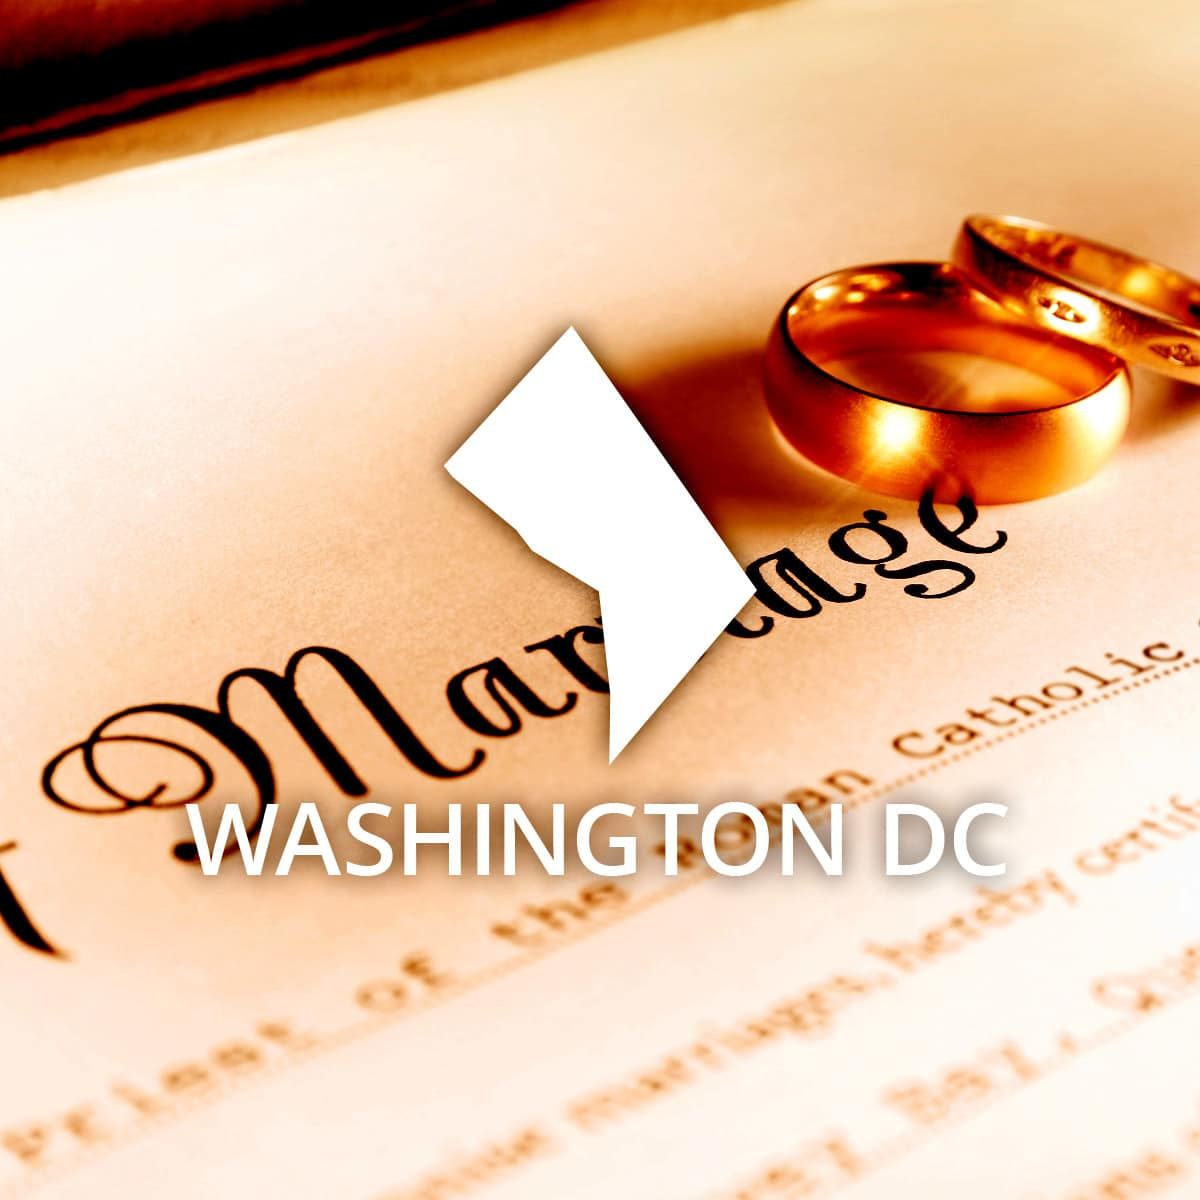 Where to Obtain a District of Columbia Marriage Certificate